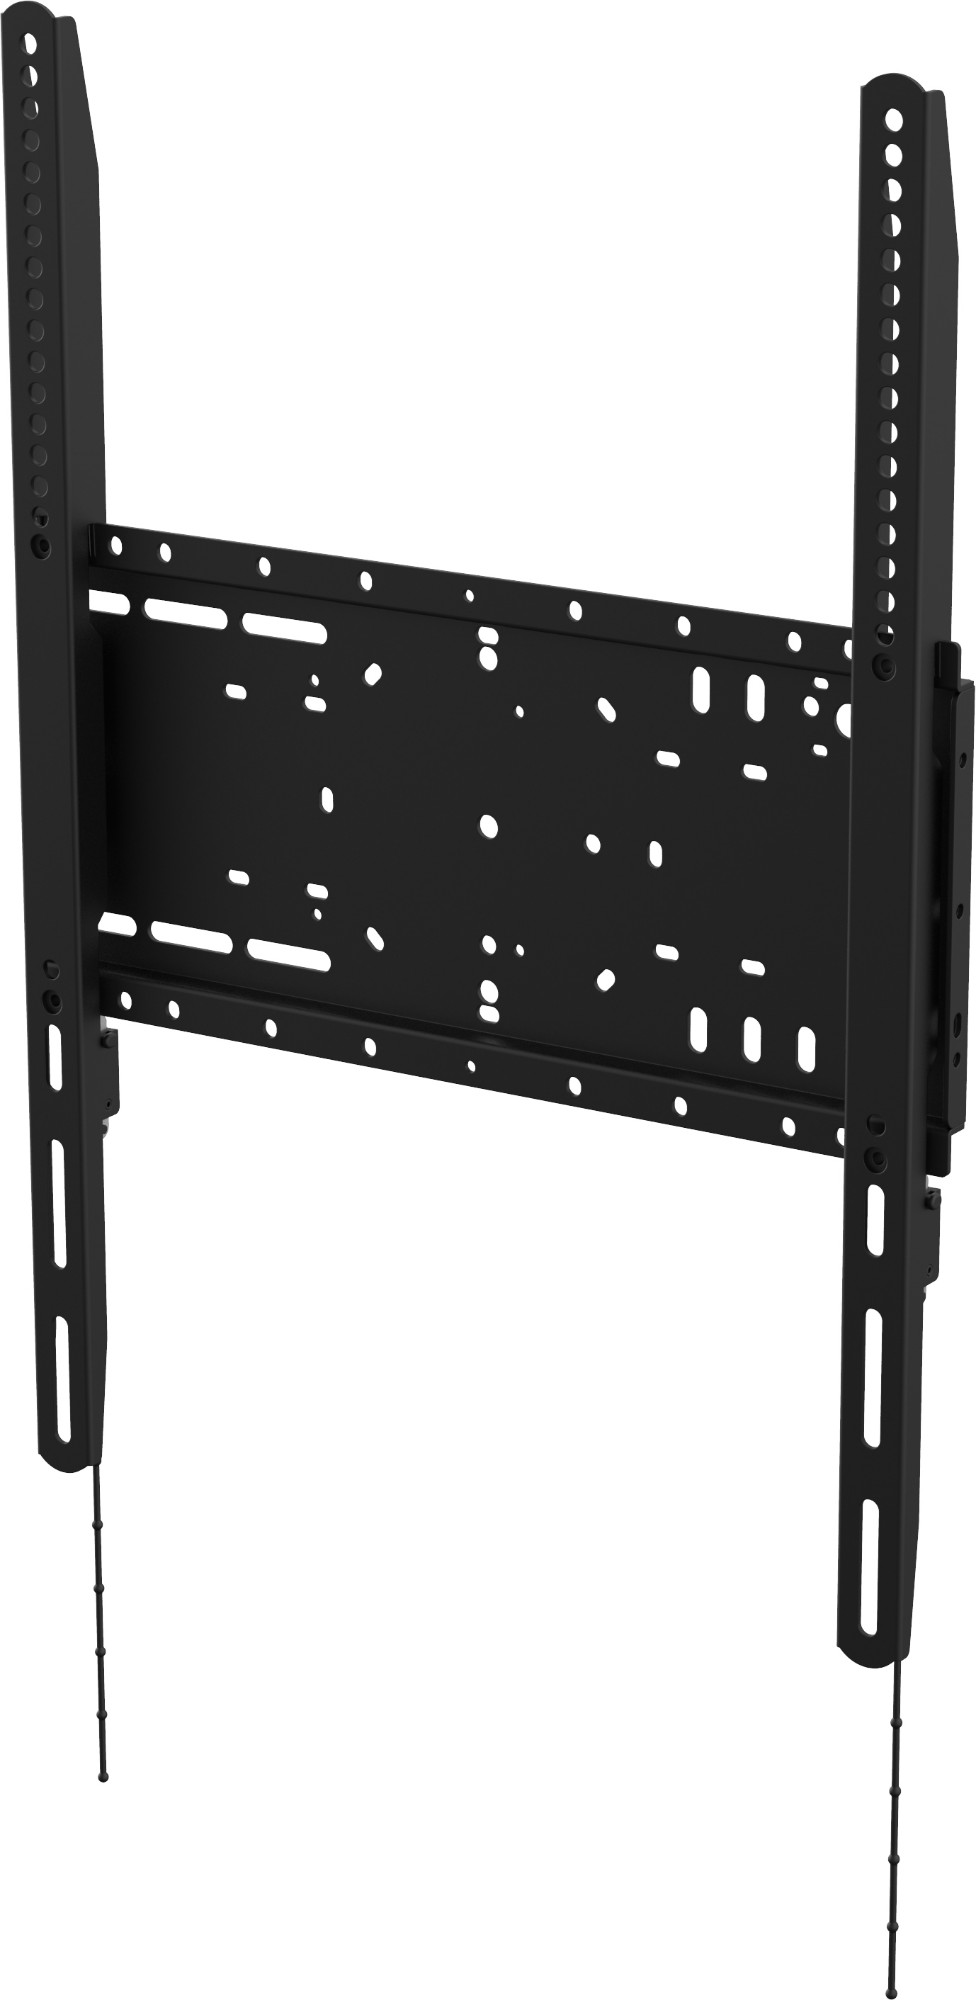 "Vision VFM-W4X6 signage display mount 177.8 cm (70"") Black"